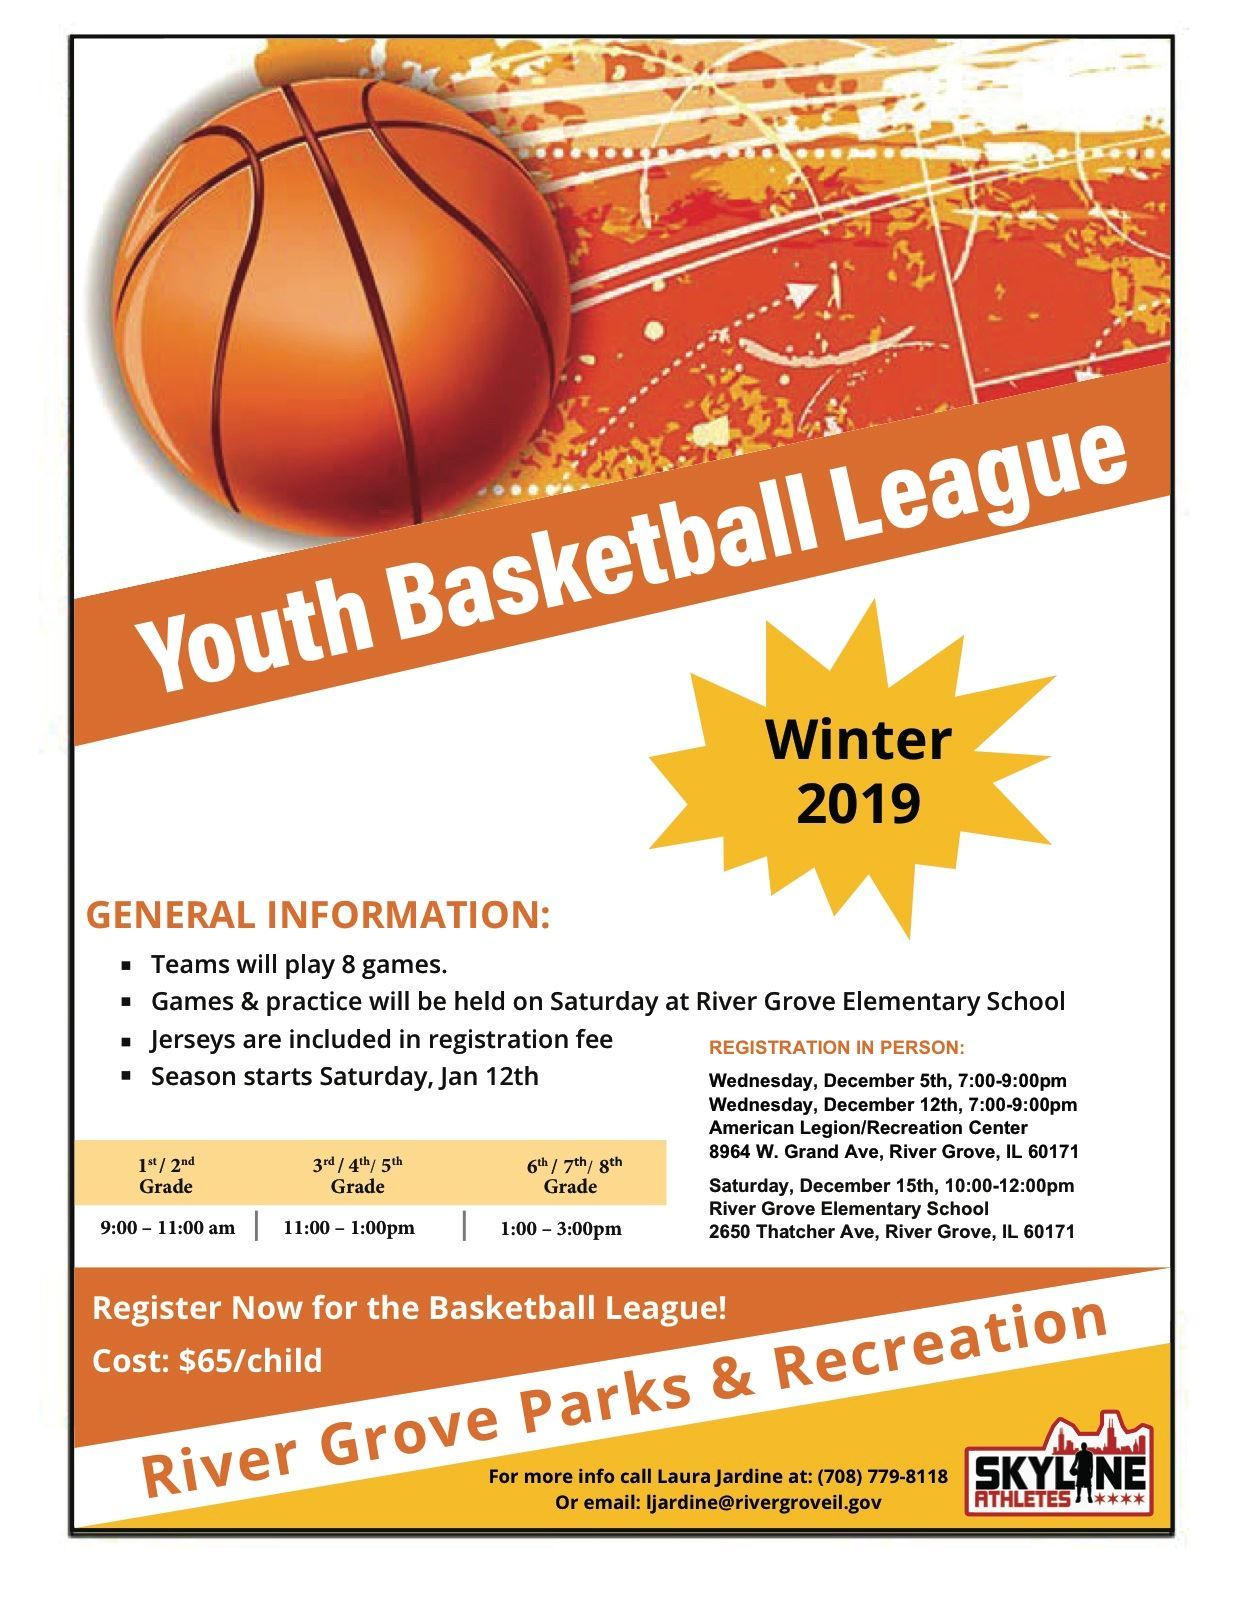 2018 Youth Basketball League flyer with signup dates and times